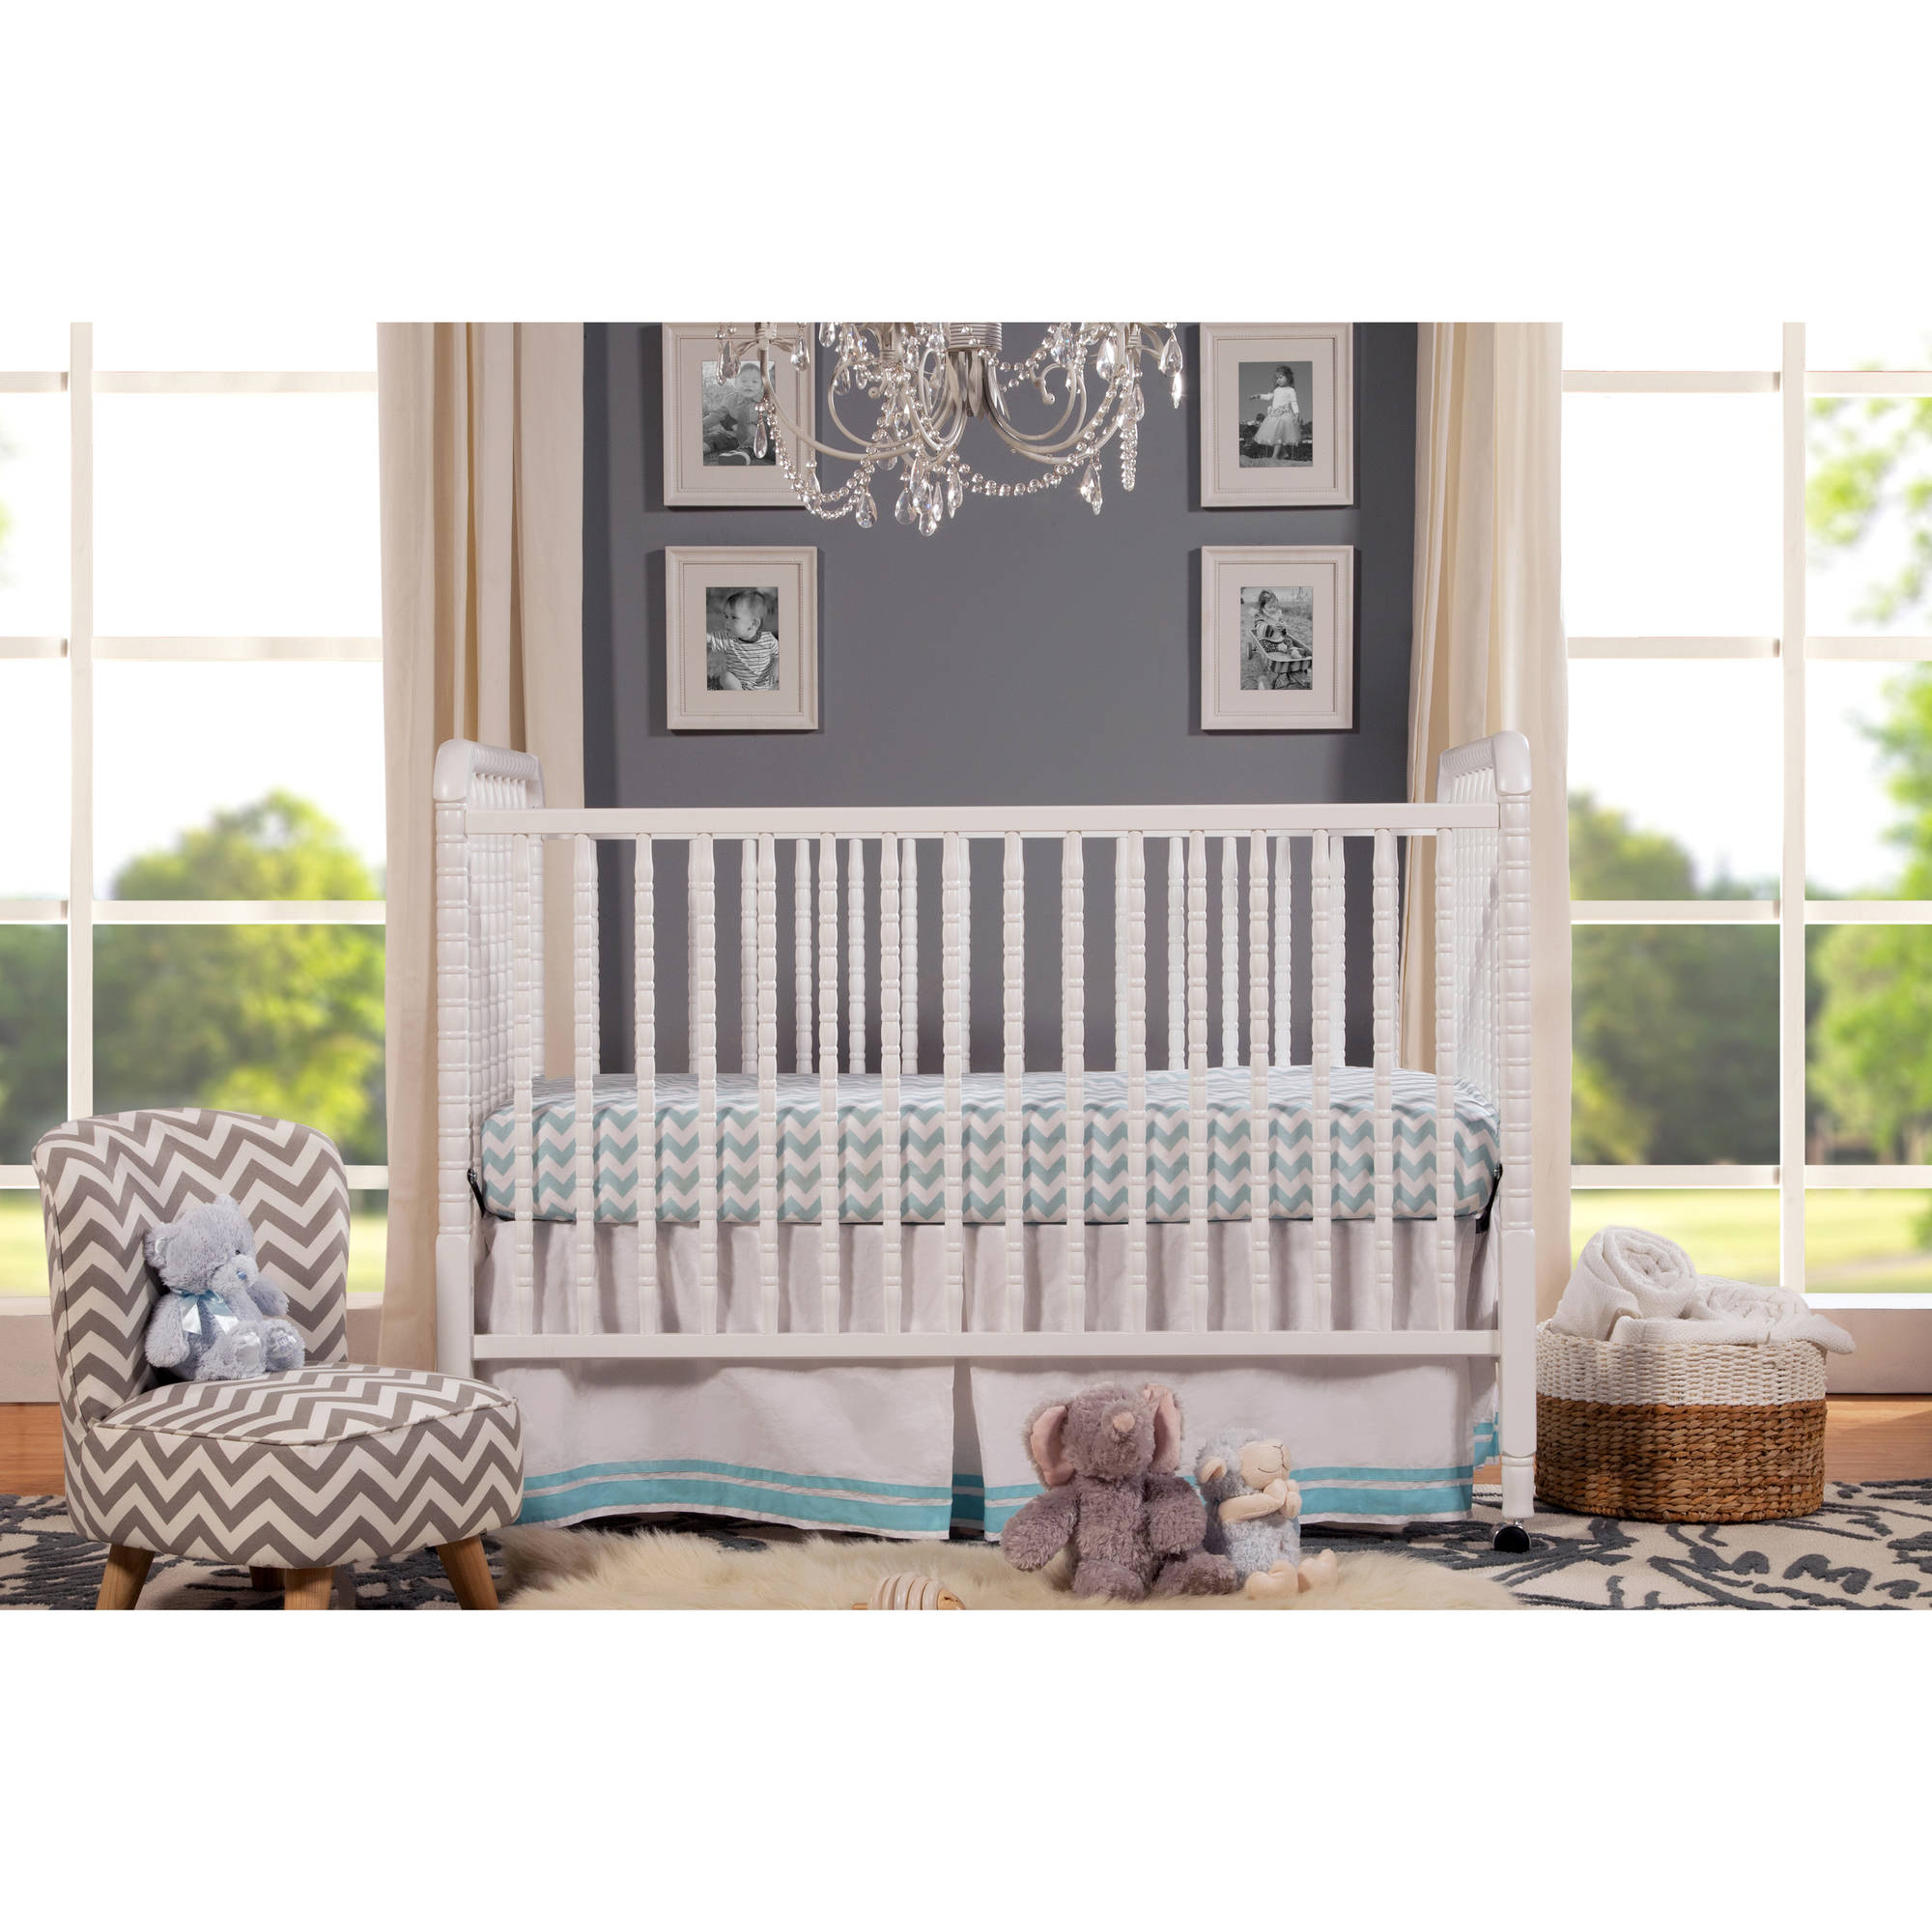 DaVinci Jenny Lind 3-in-1 Crib, Choose Your Finish